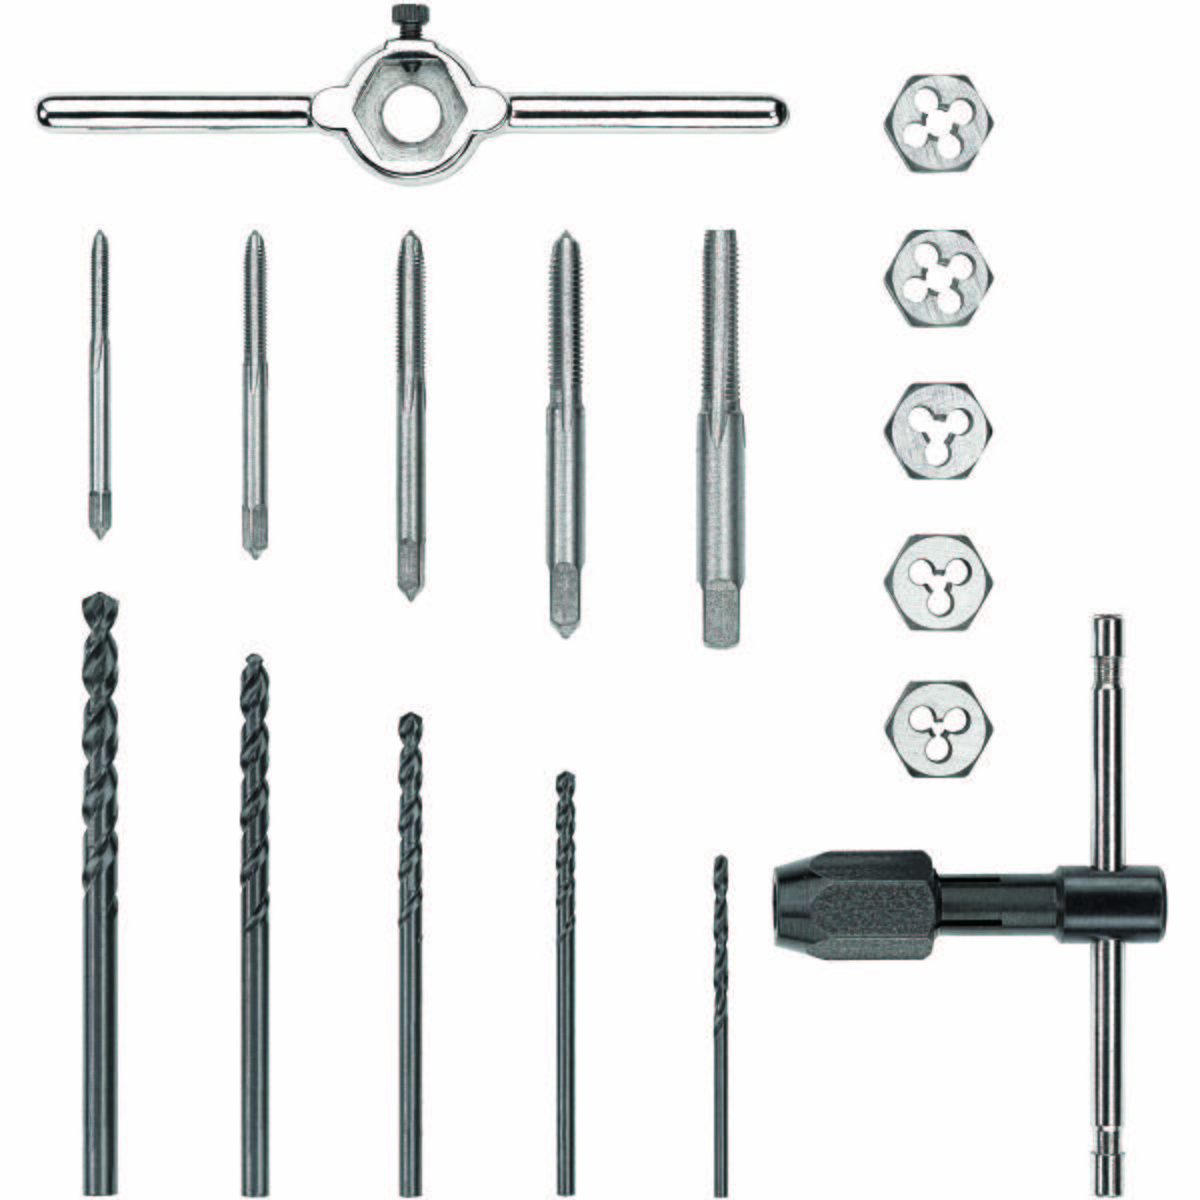 17pc Fractional Tap and Small Hex Die Set